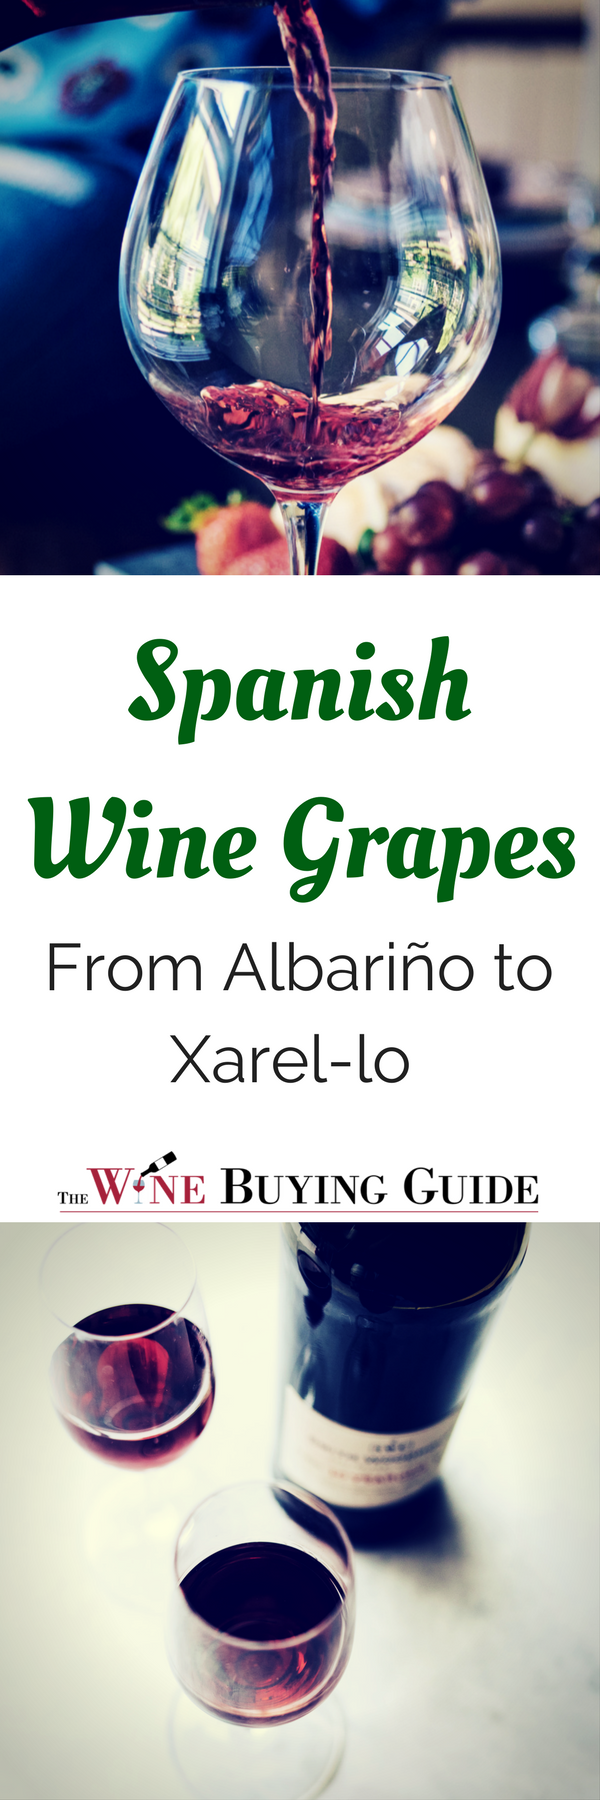 Spanish Wine Grapes A List From Albarino To Xarel Lo Spanish Wine Wine Grapes